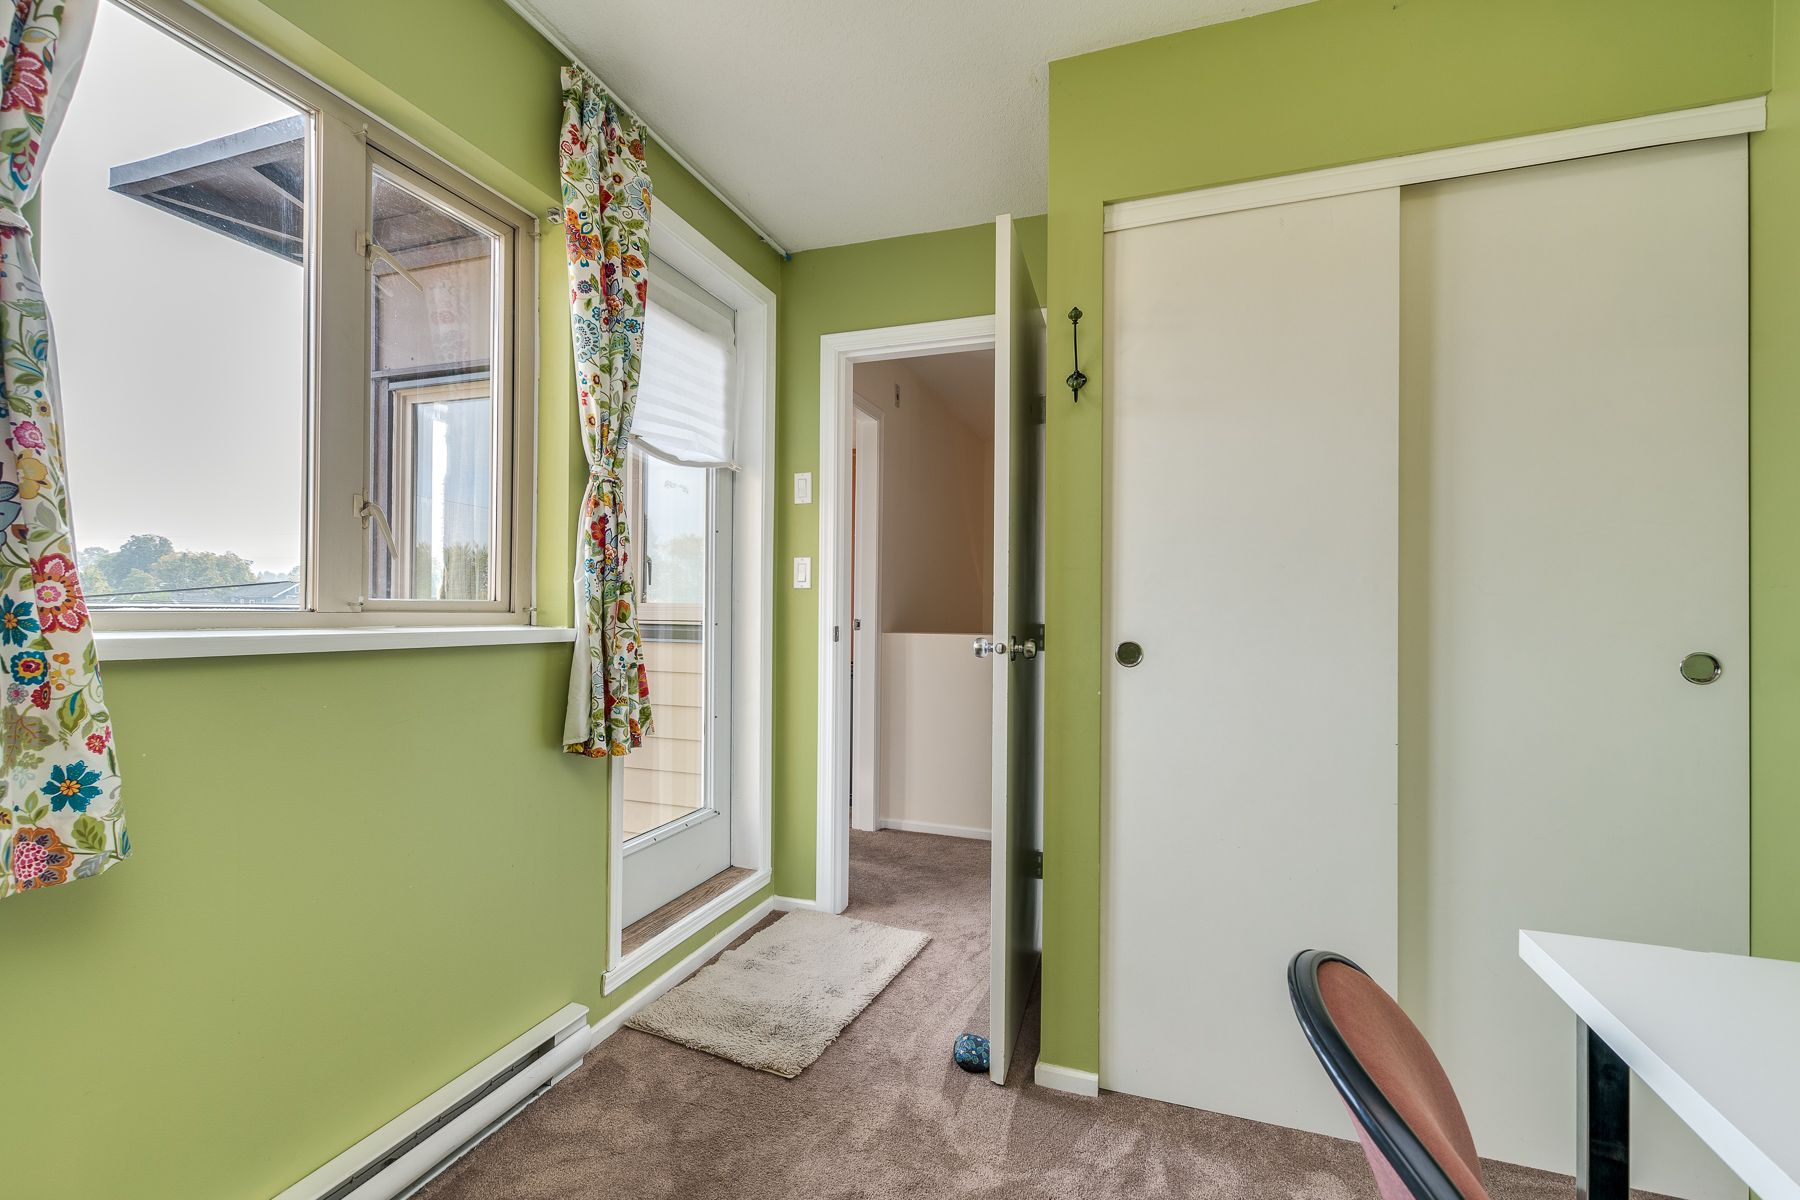 Photo 27: Photos: 7-2389 Charles St in Vancouver: Grandview Woodland Townhouse for sale (Vancouver East)